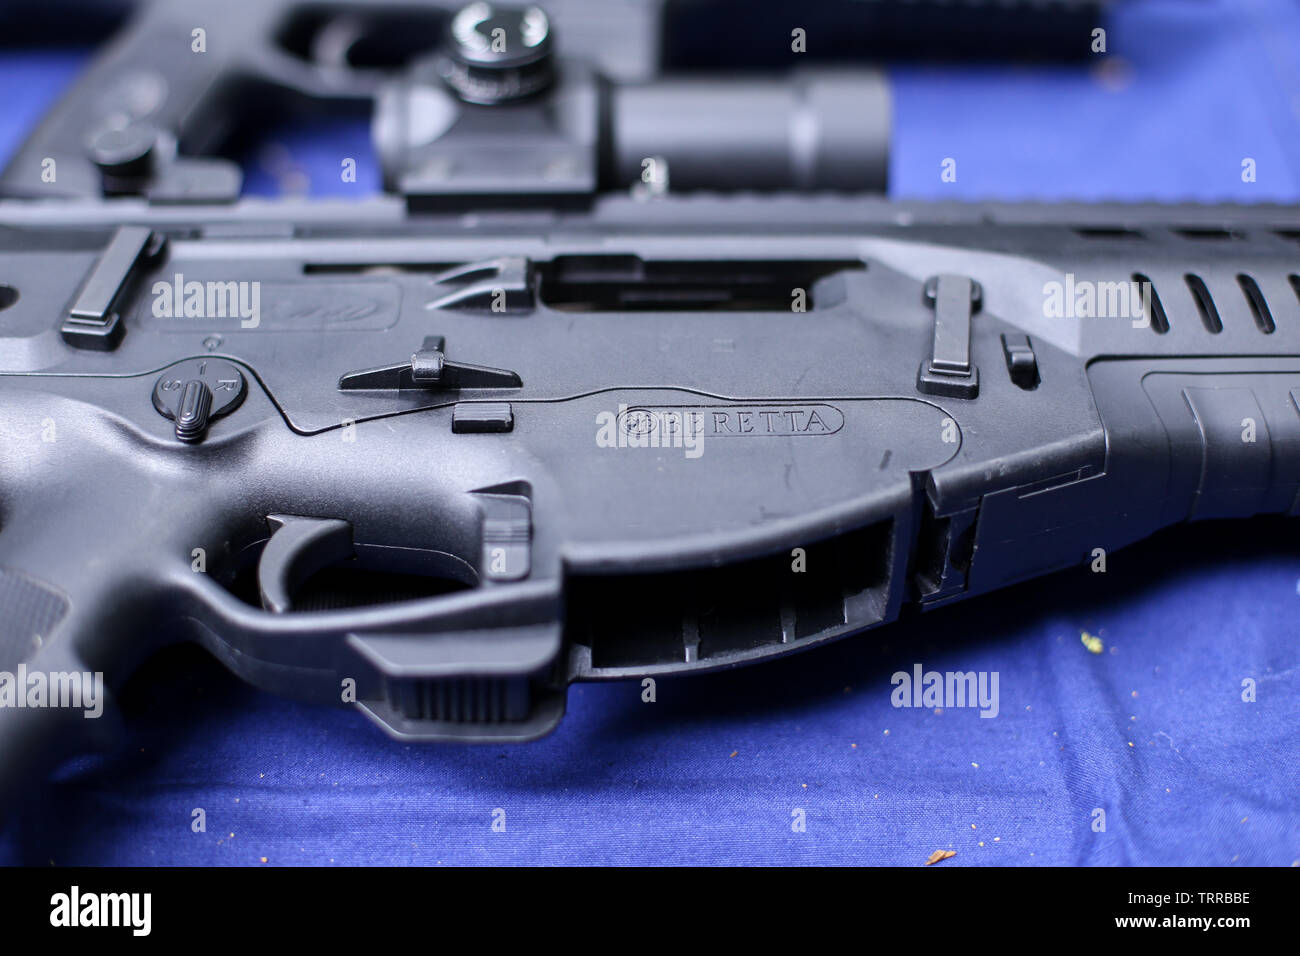 Bucharest, Romania - June 10, 2019: Details with the Beretta logo on a ARX 160 tactical rifle Stock Photo